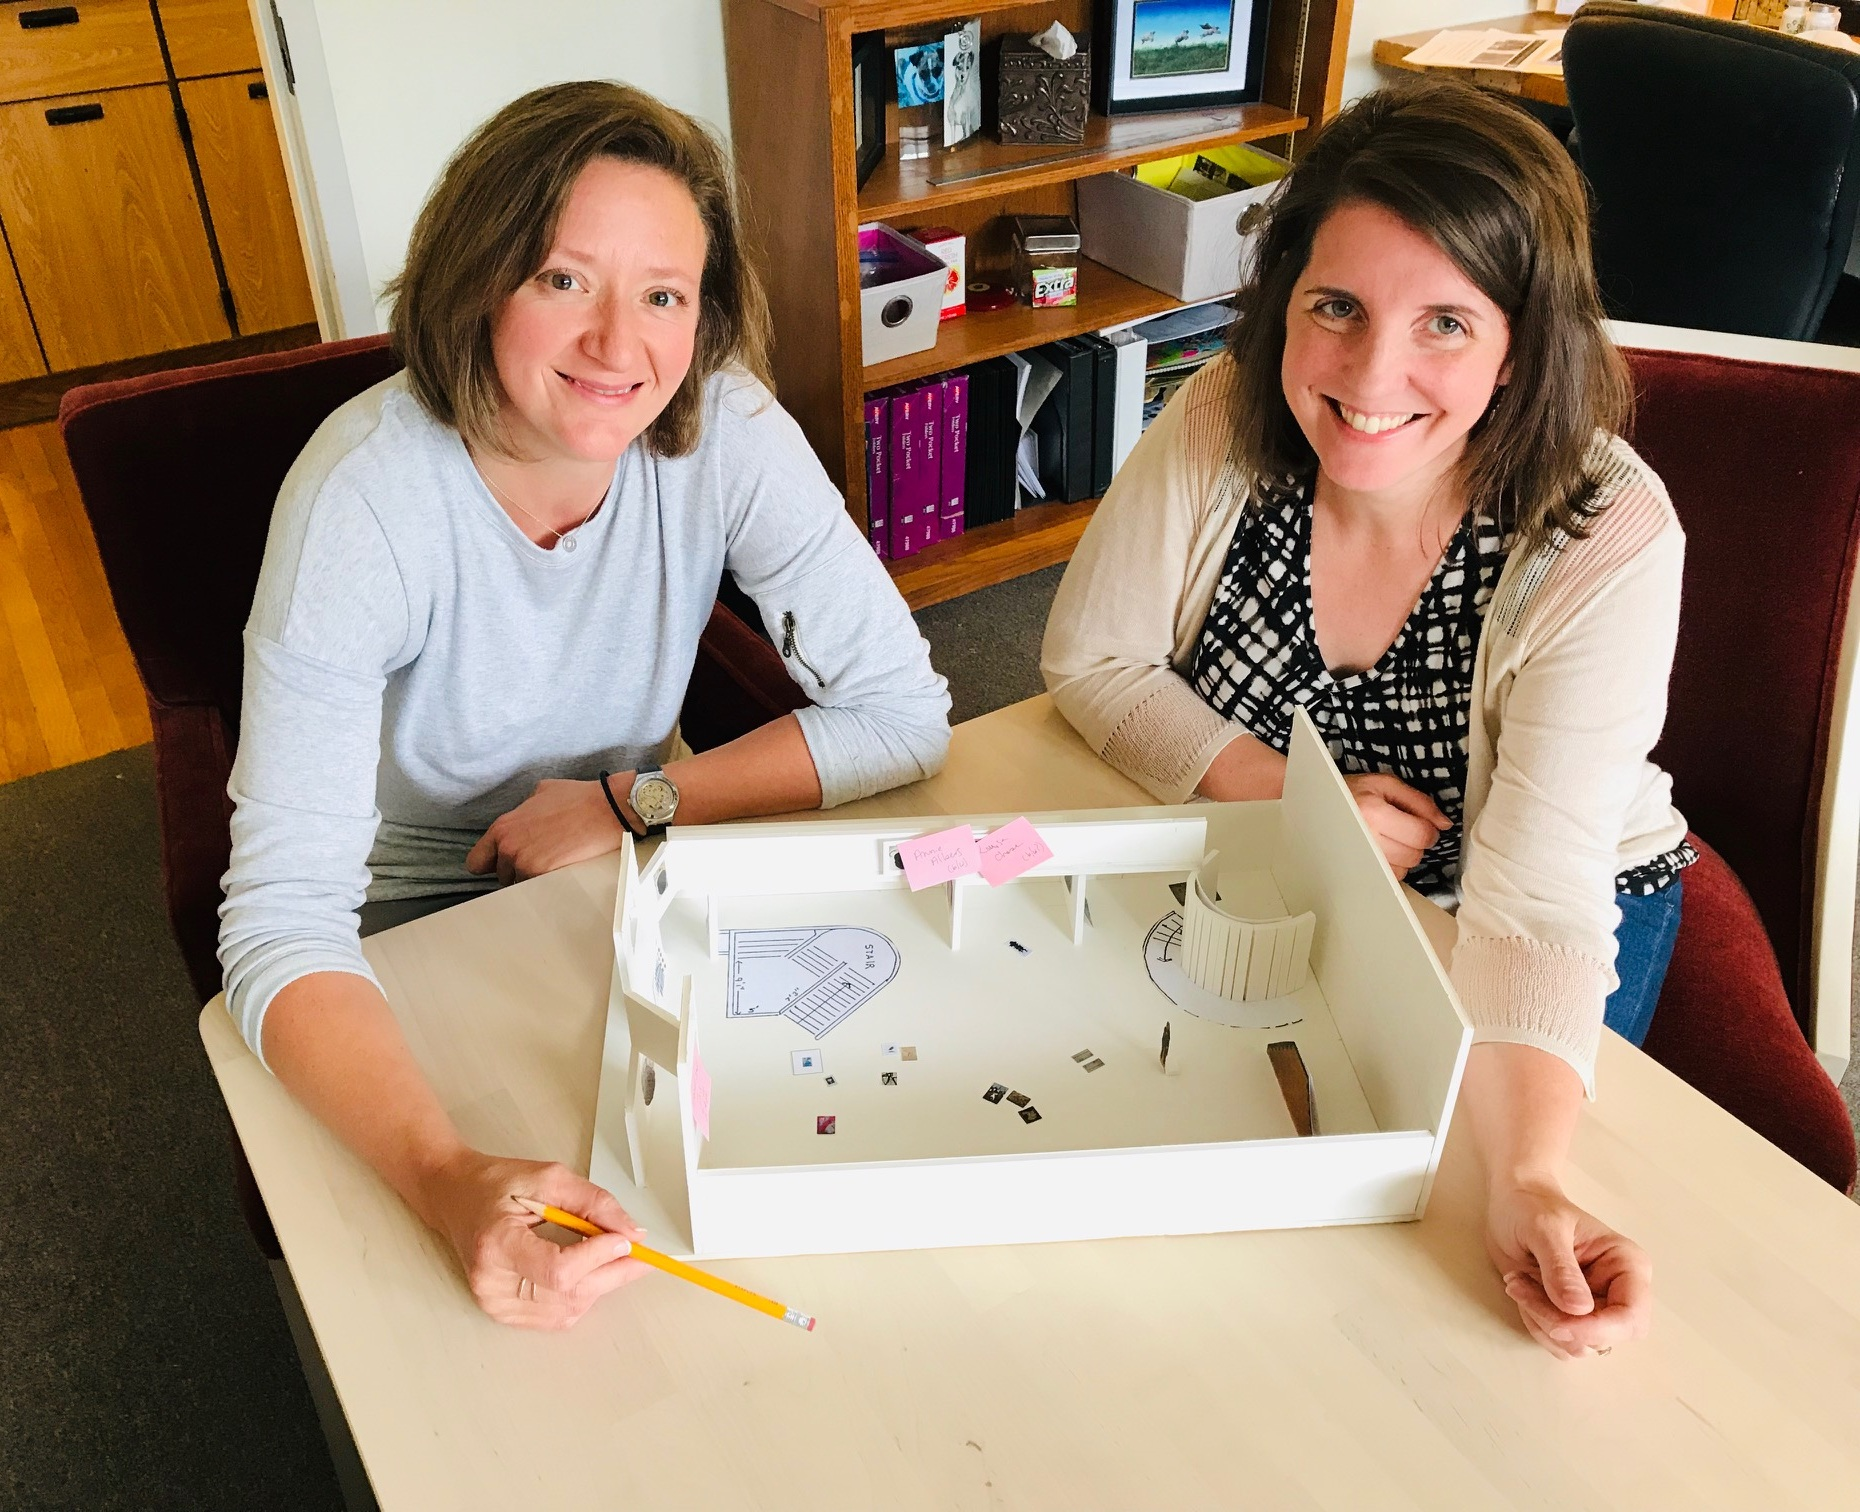 Clarissa and Kristina play with a model of the Coe Gallery discussing an upcoming exhibition